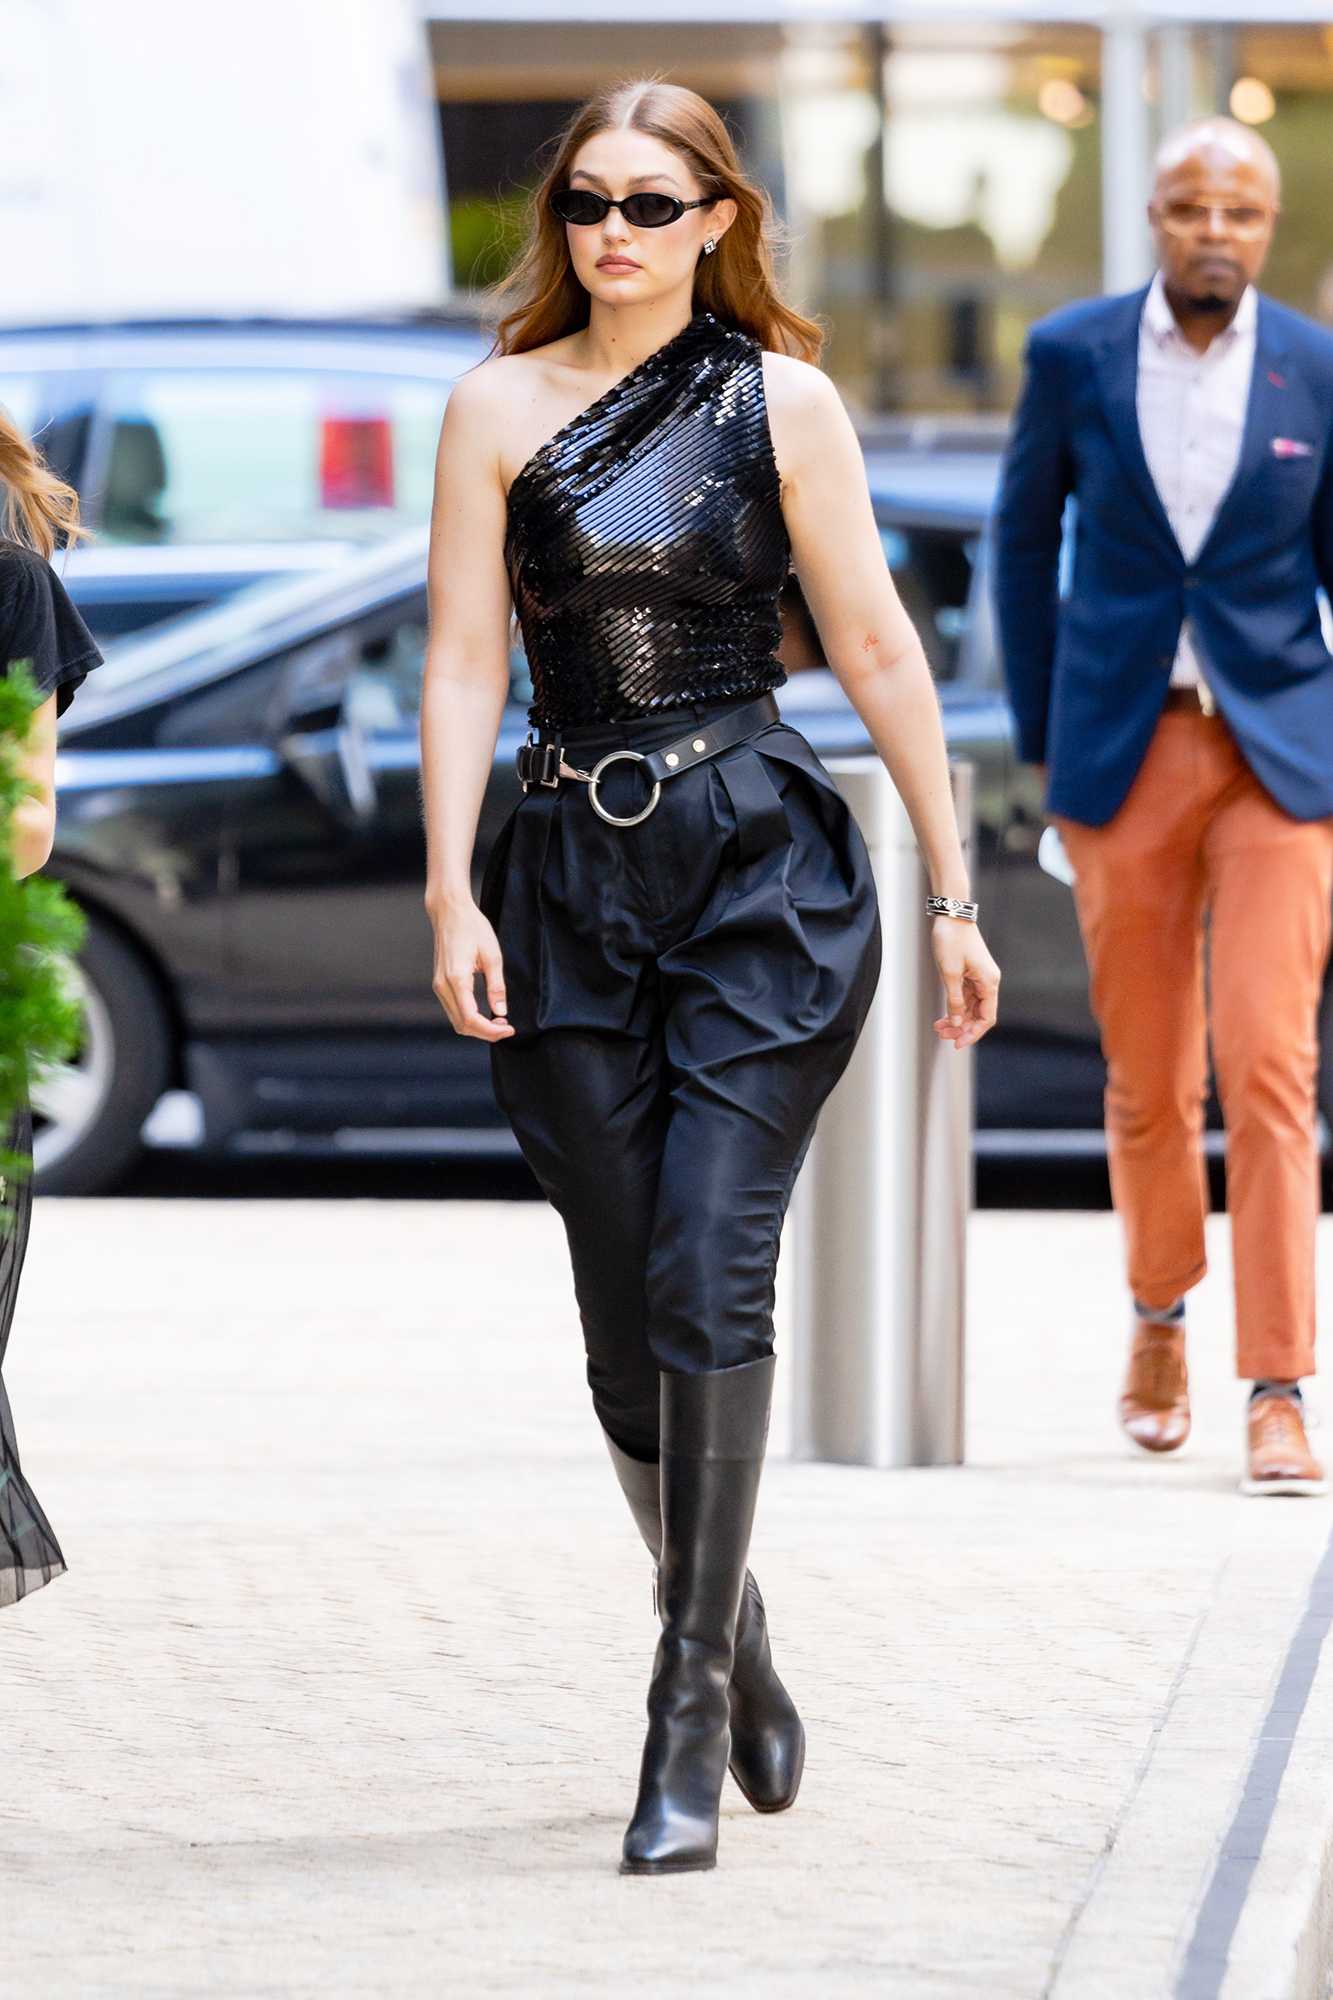 Gigi Hadid is spotted headed to a photoshoot in New York City.